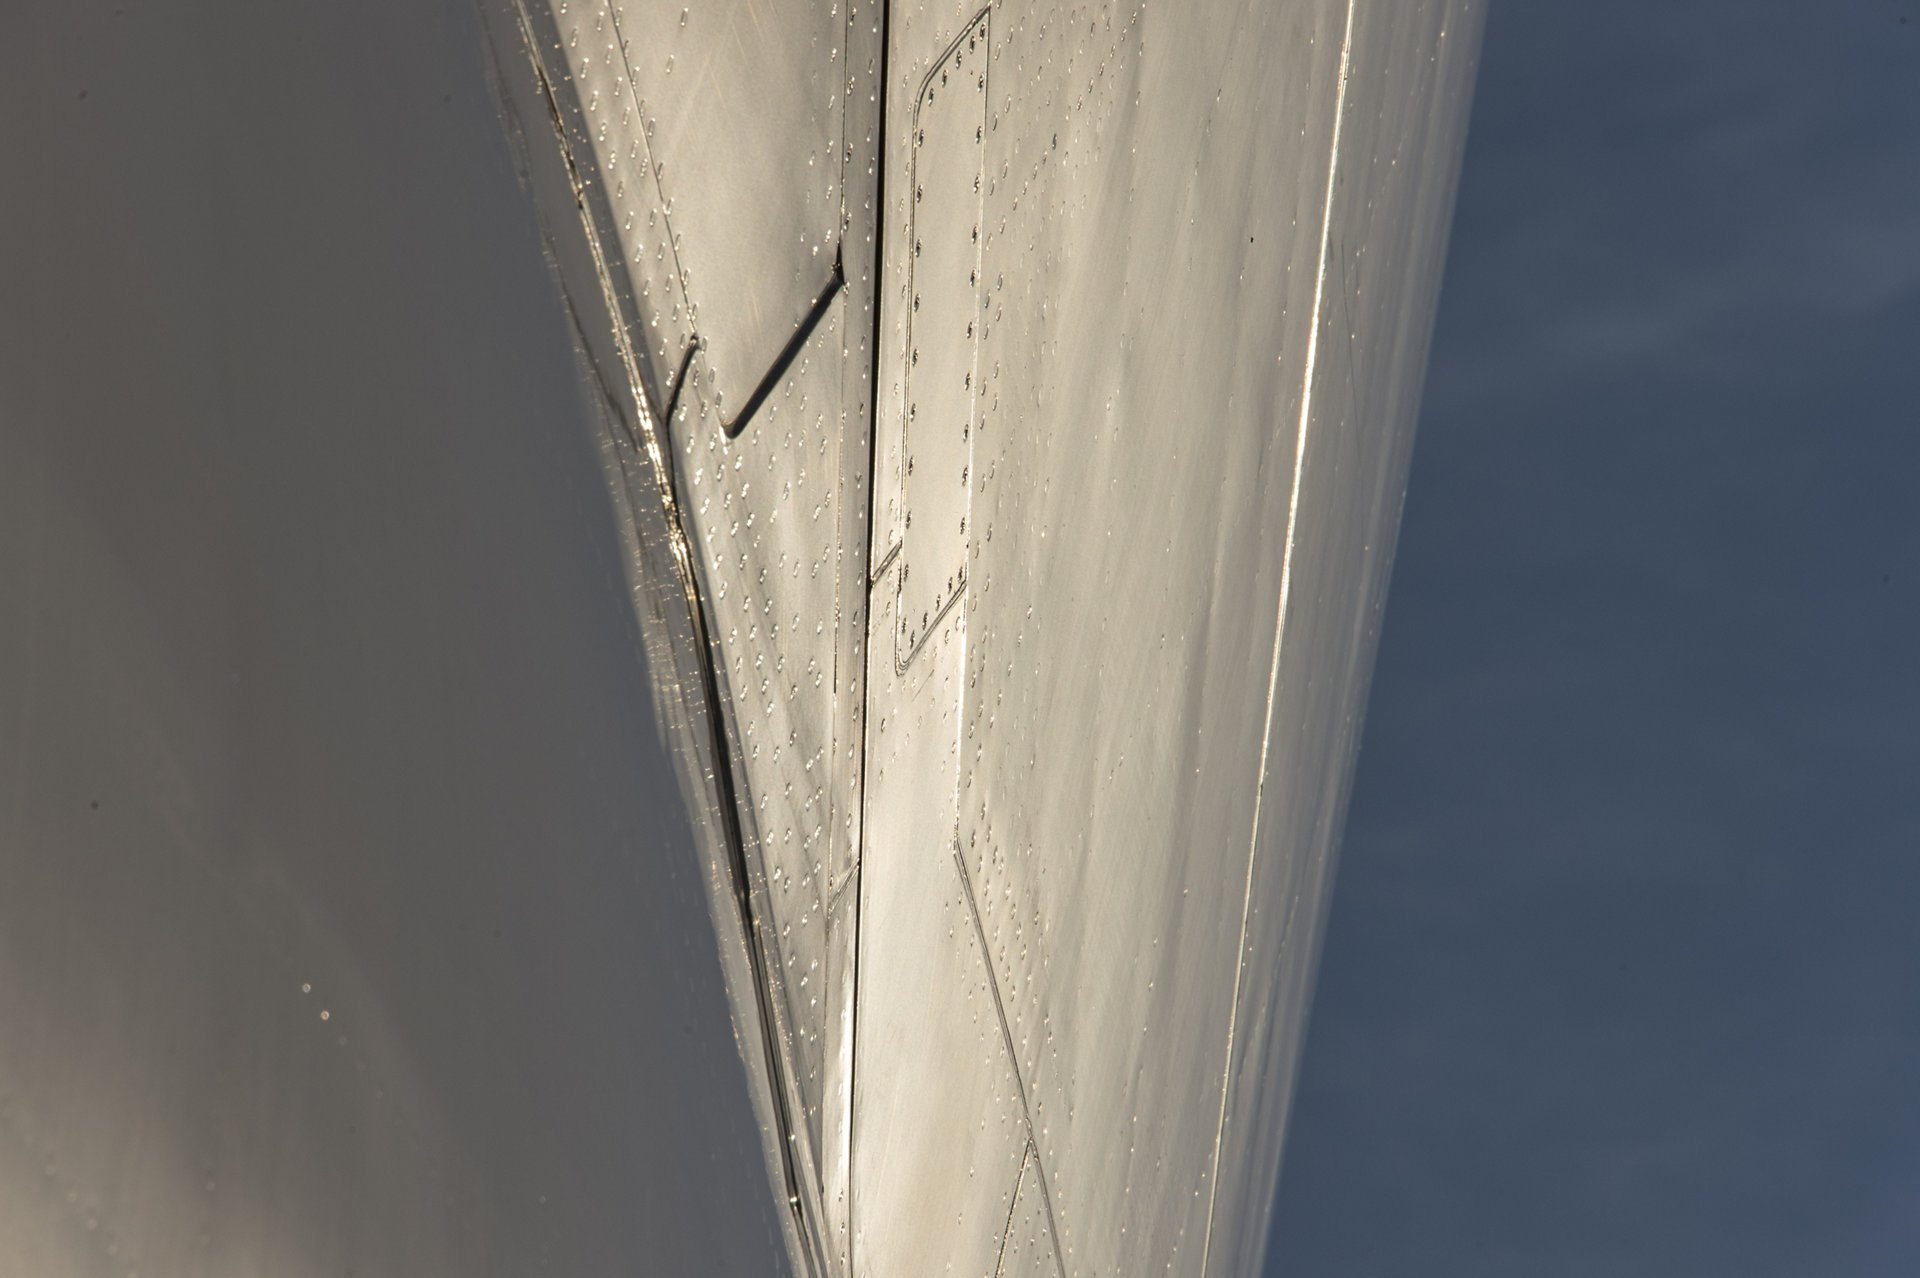 Airbus Beluga – Fuselage close-up 1